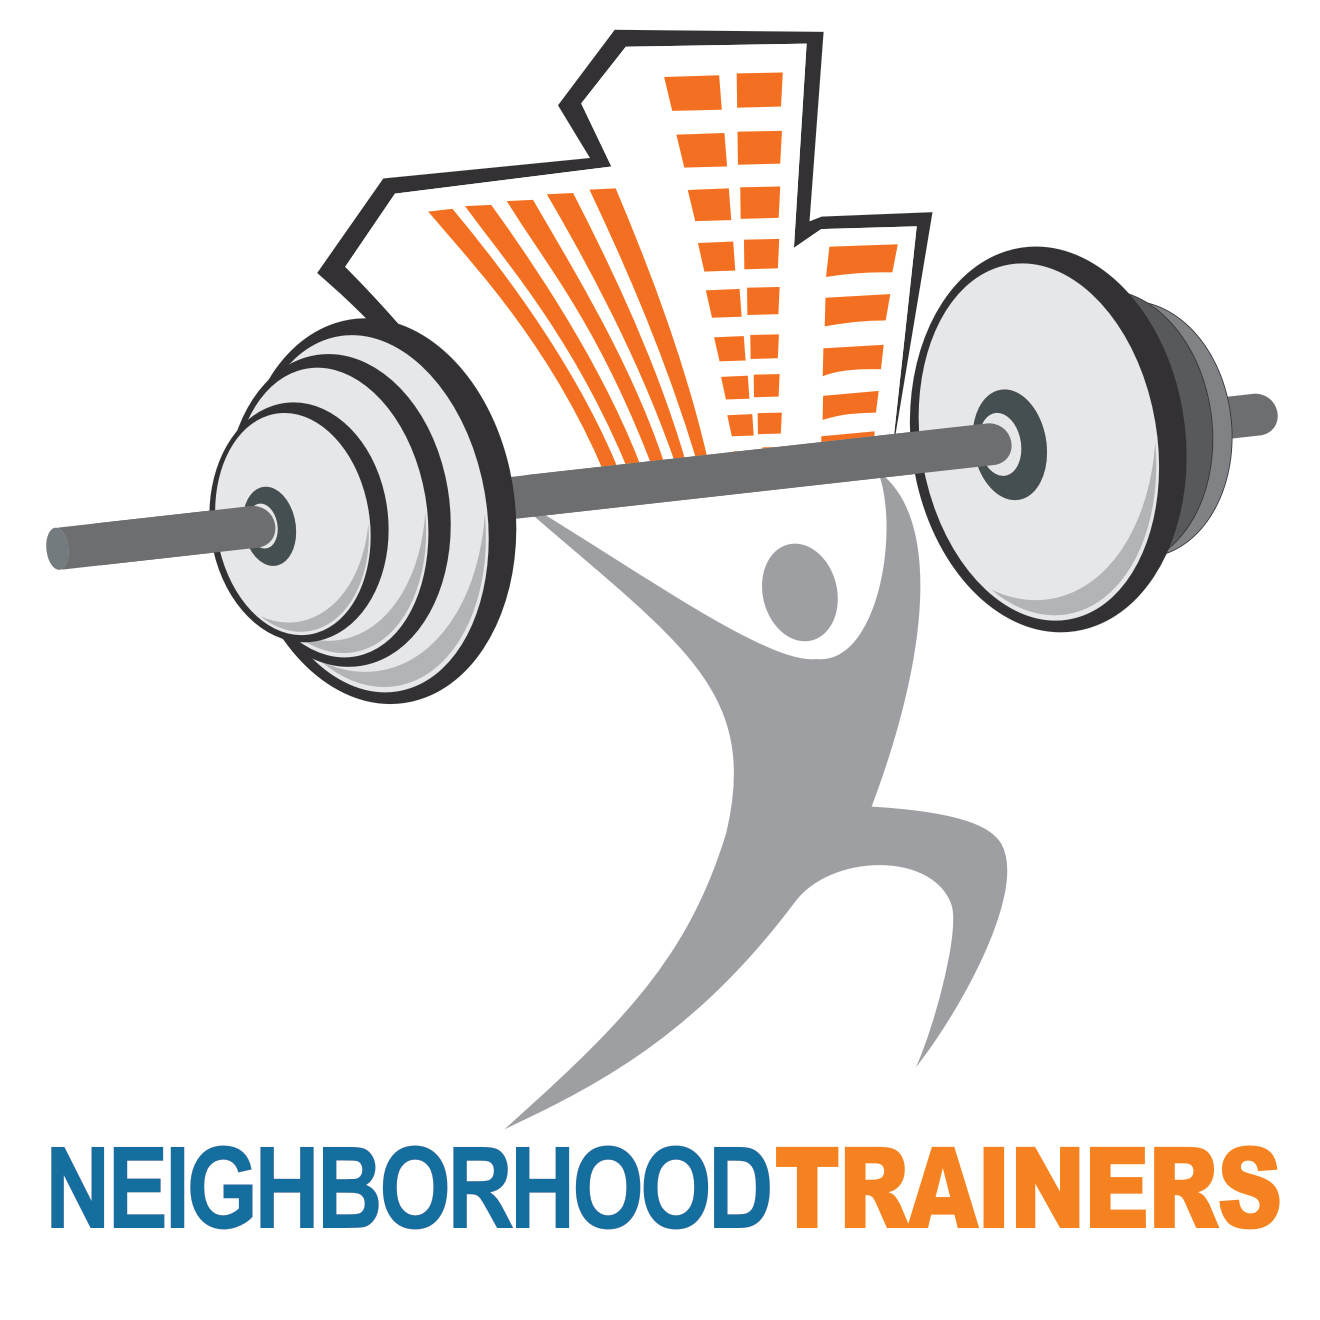 Neighborhood Trainers